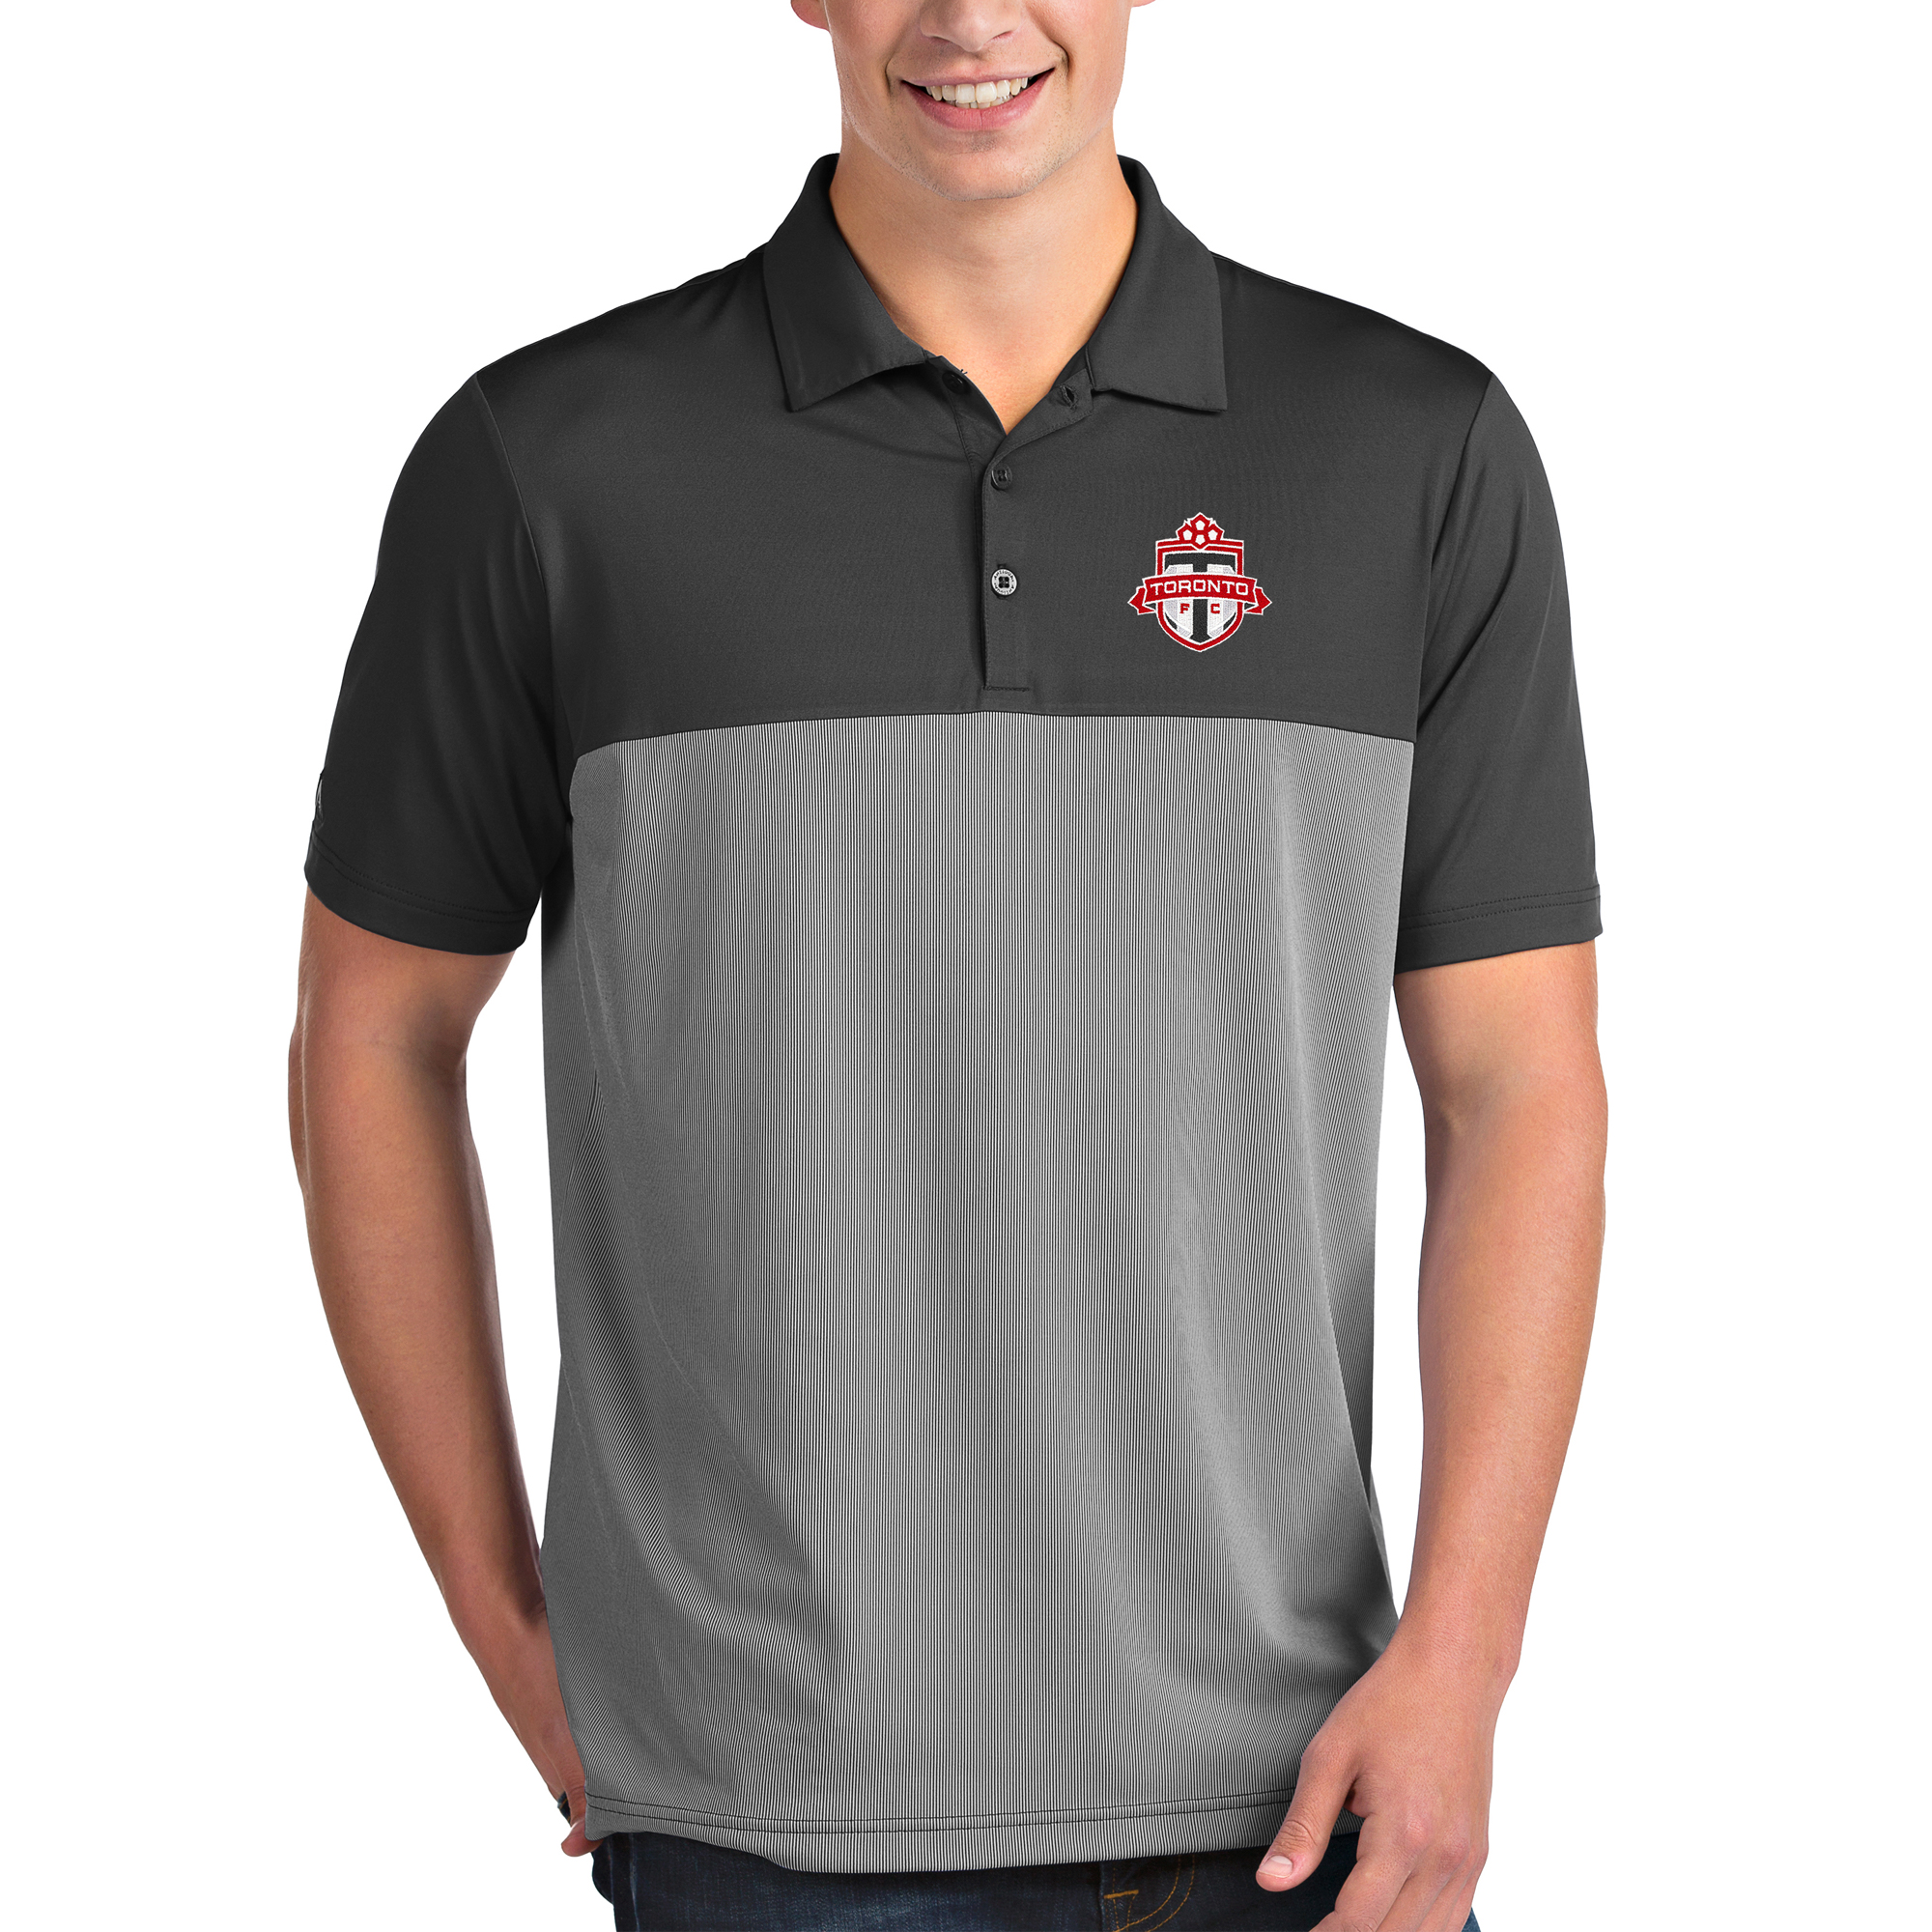 Toronto FC Antigua Venture Polo - Heathered Gray/White